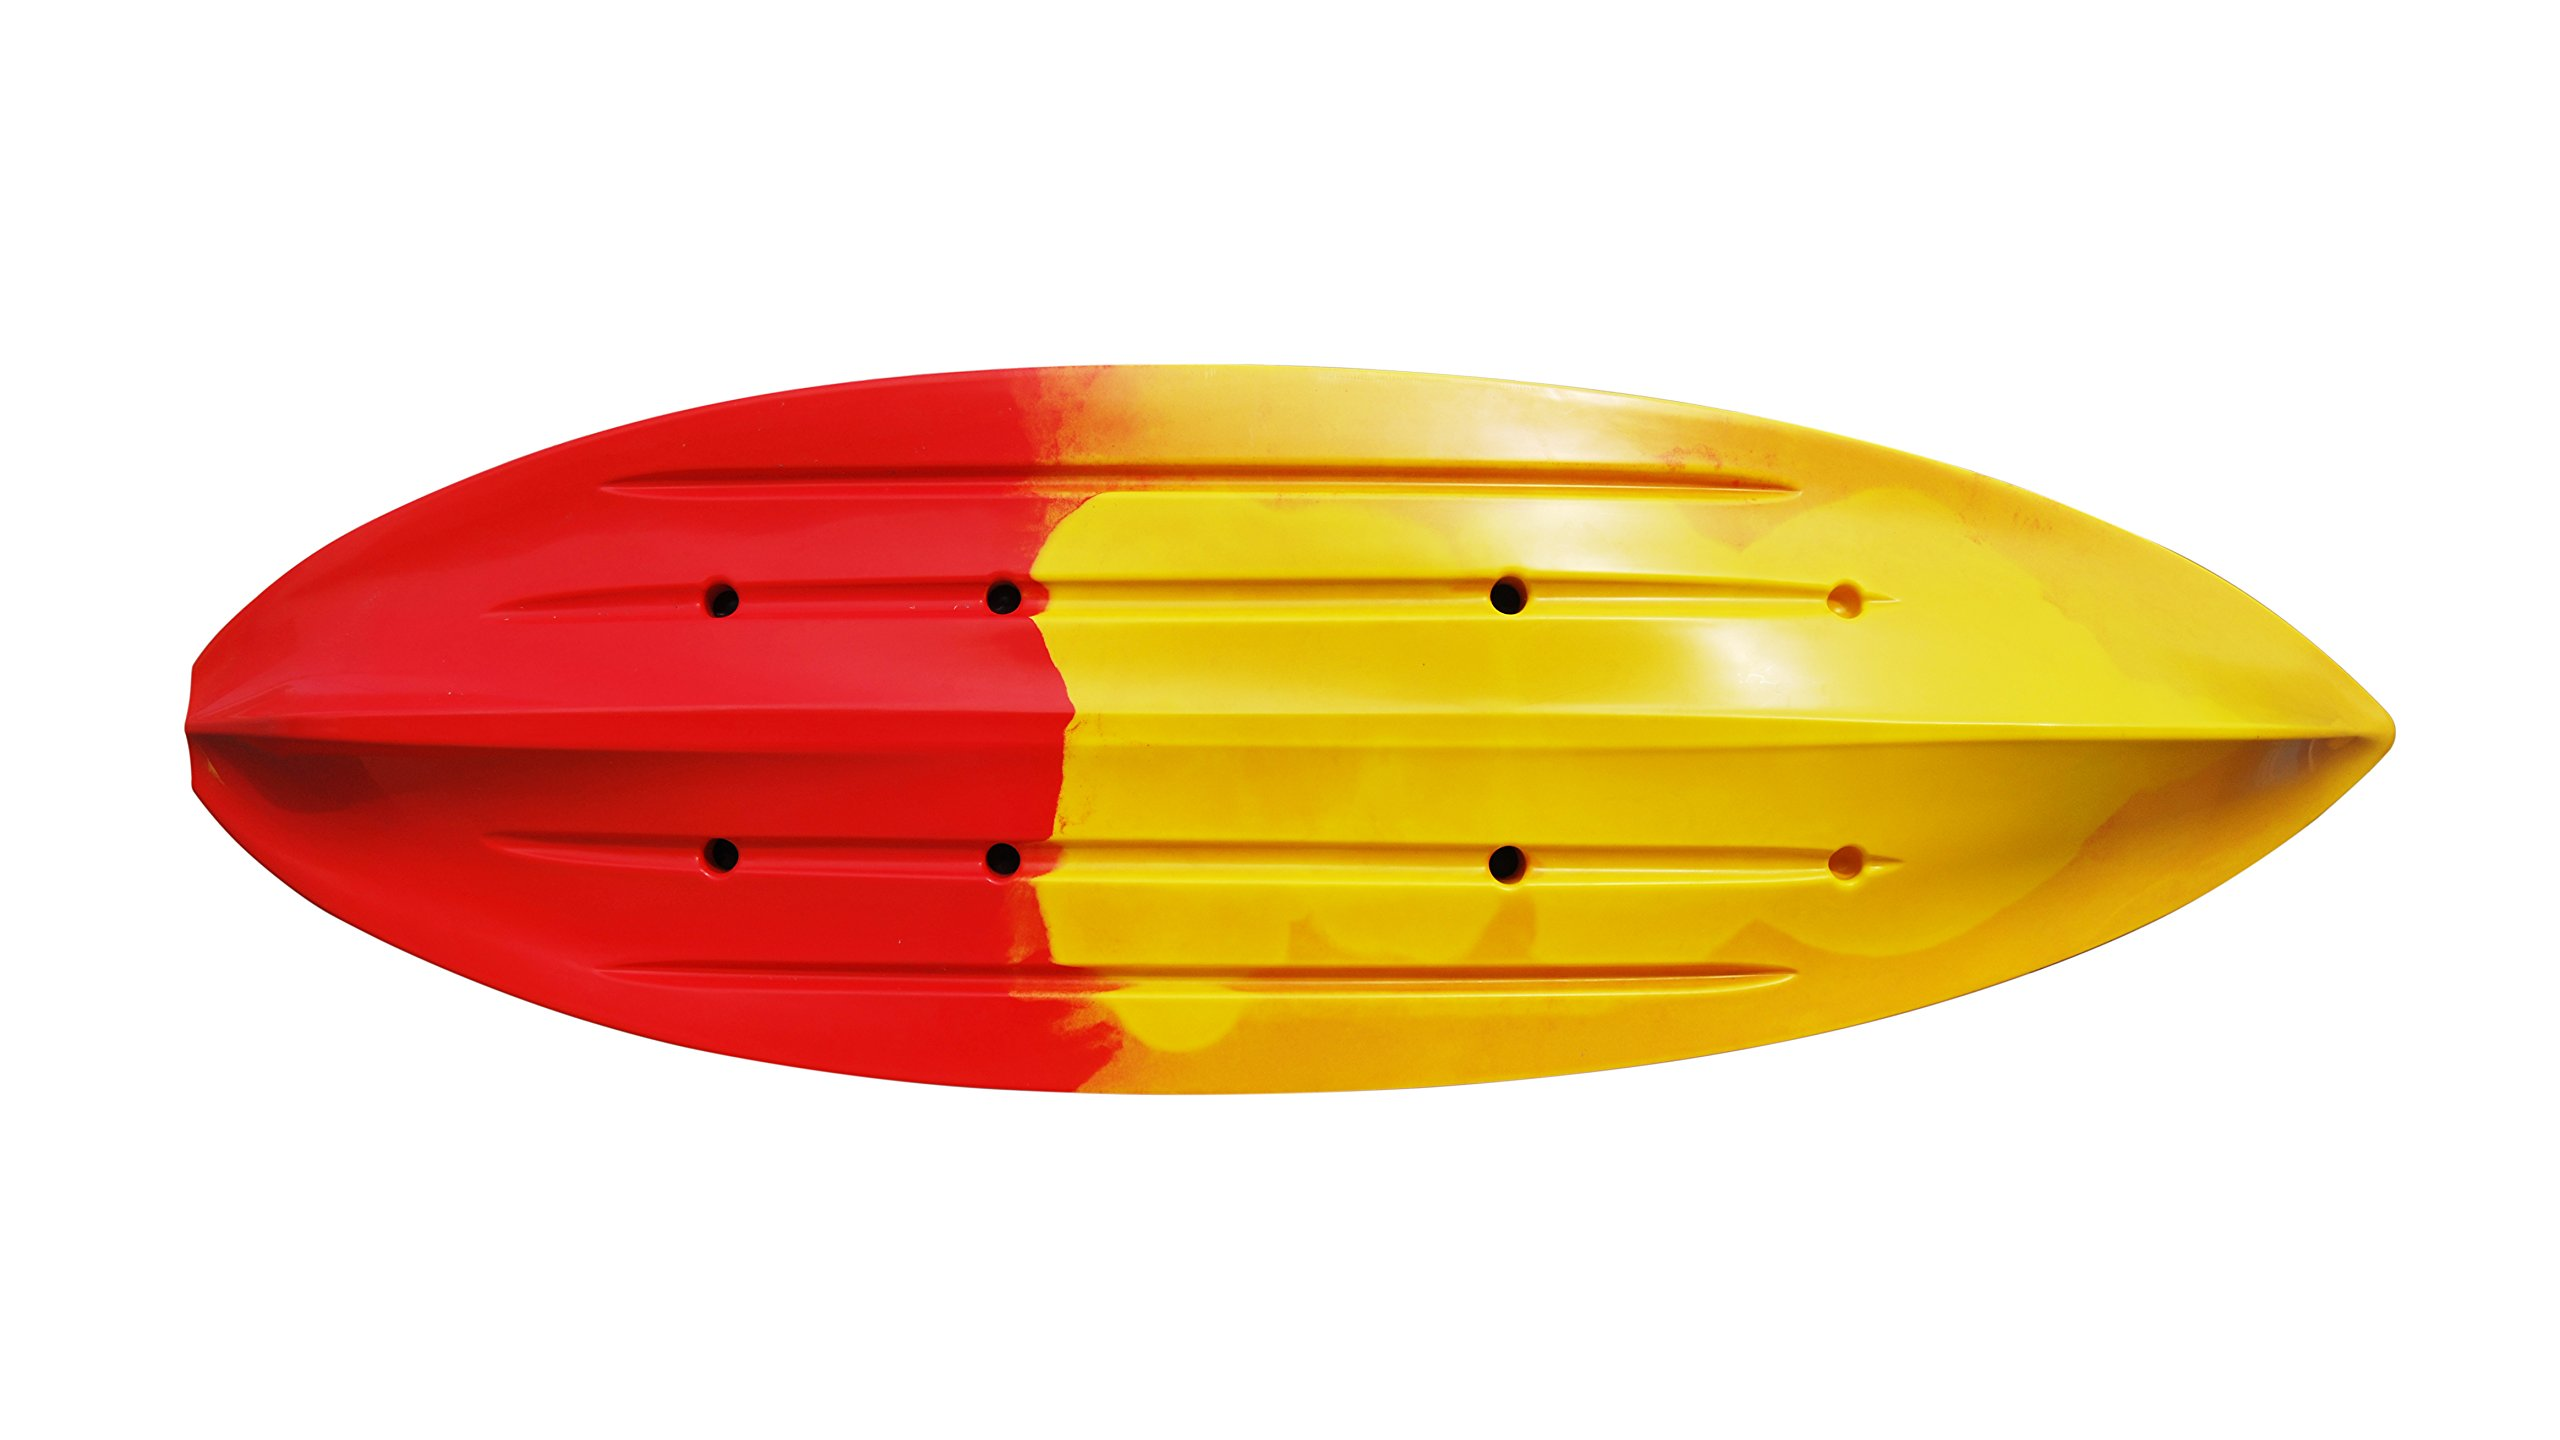 Brooklyn Kayak Company BKC UH-FK285 9.5 Foot Sit on Top Single Fishing Kayak with Upright Seat and Paddle Included RED/Yellow by Brooklyn Kayak Company